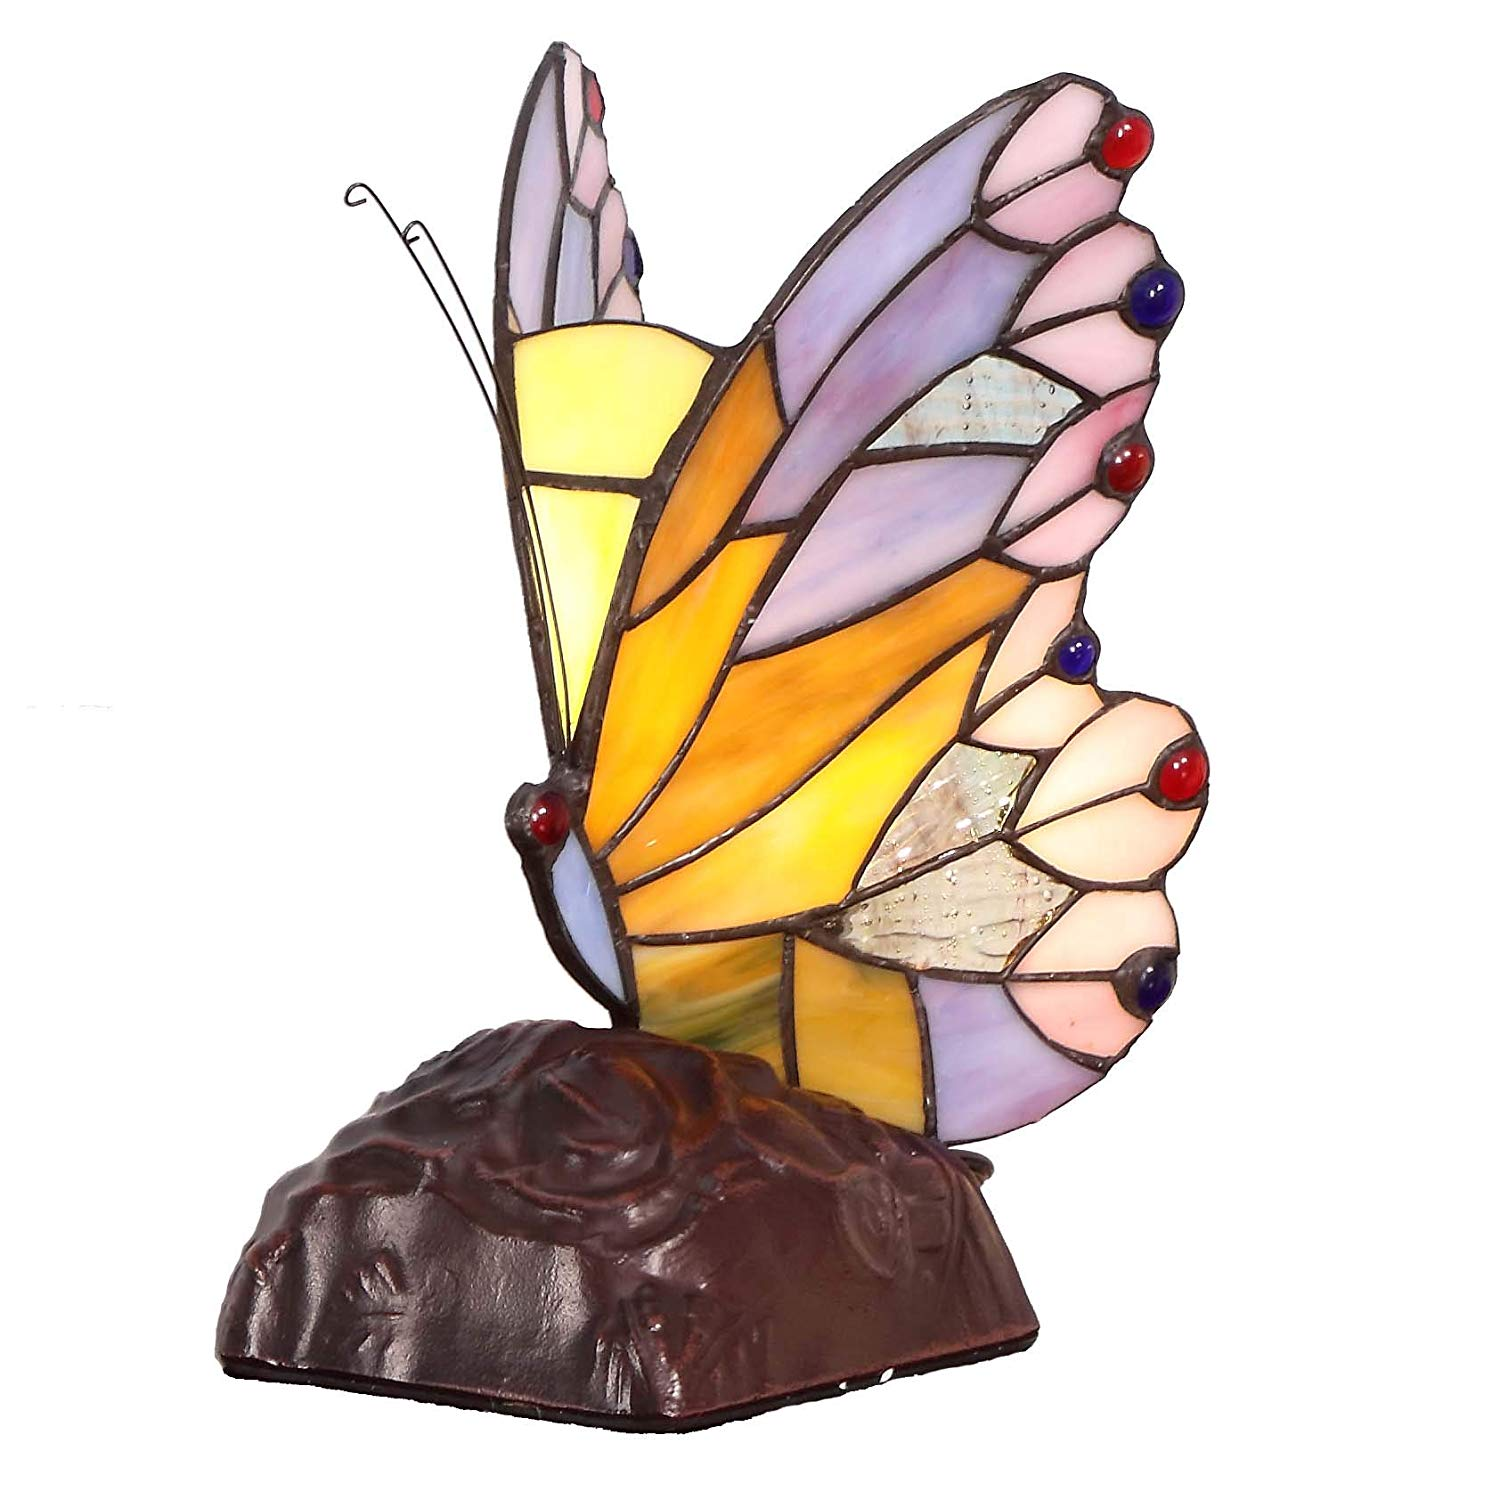 bieye inch butterfly tiffany style stained glass accent tall chloe table lamp pool furniture sets sun porch crate and barrel teton side cabinet rose gold target garden chairs